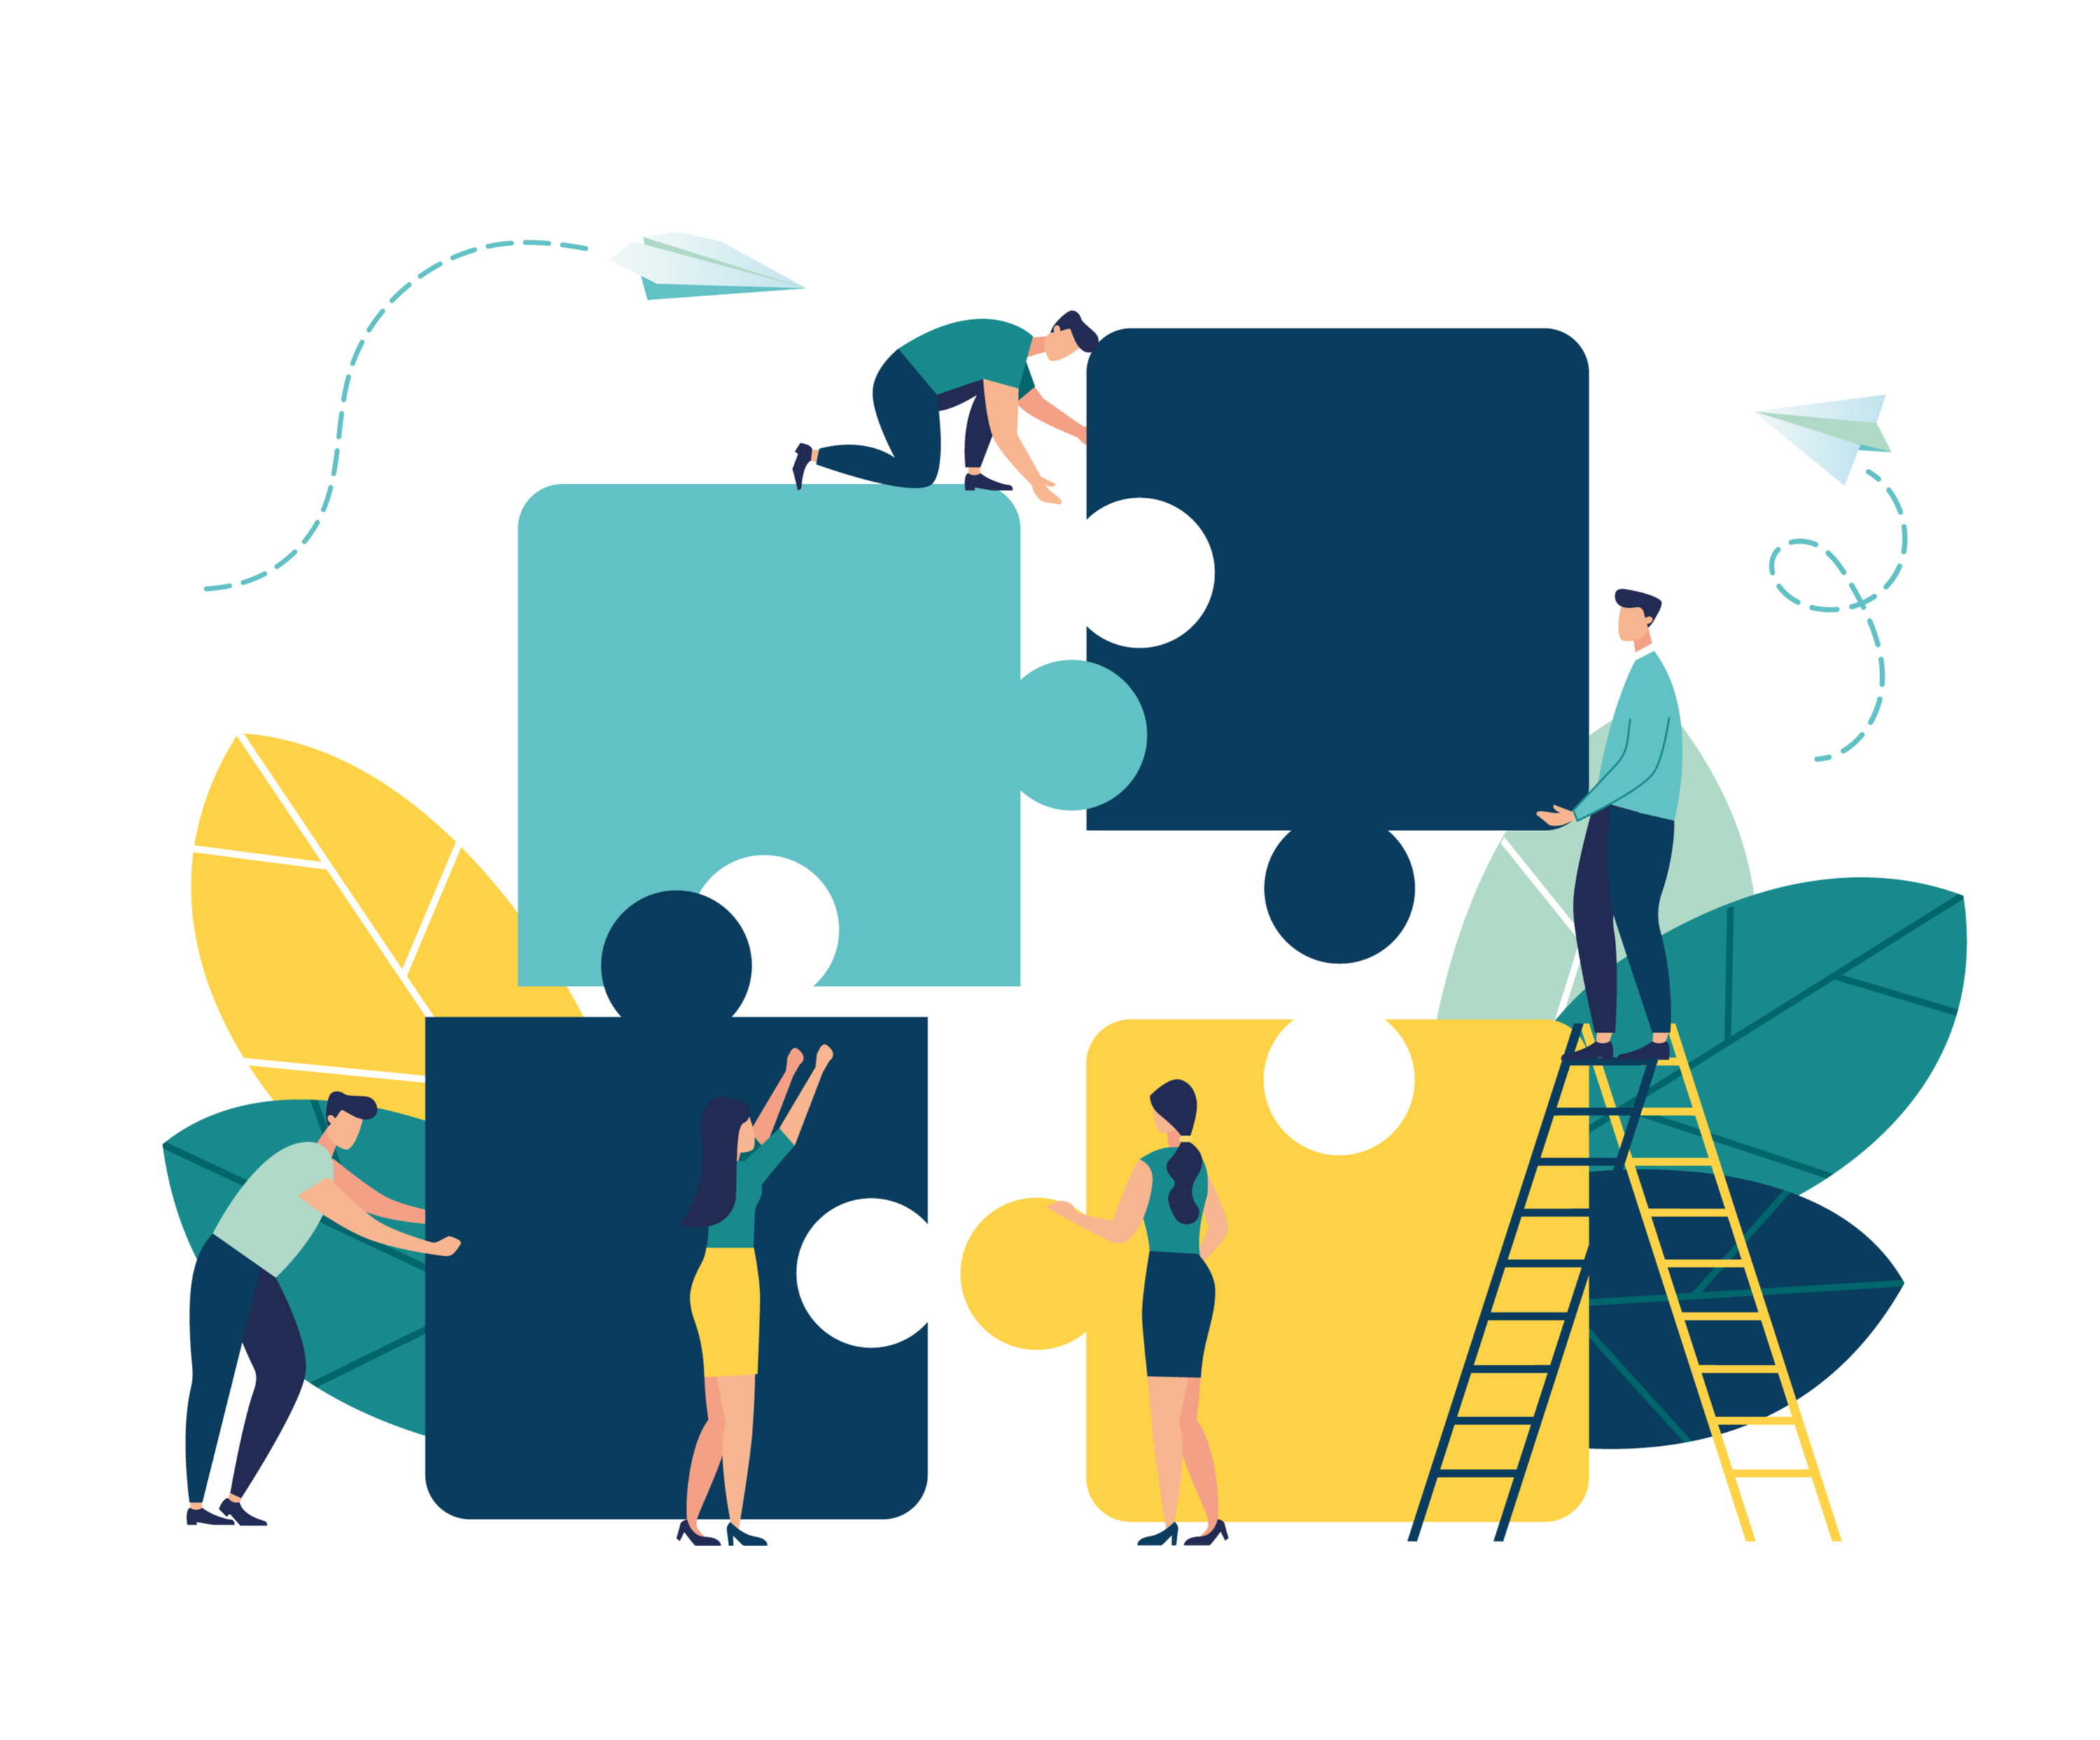 Animation of figures connecting big puzzle pieces building company culture